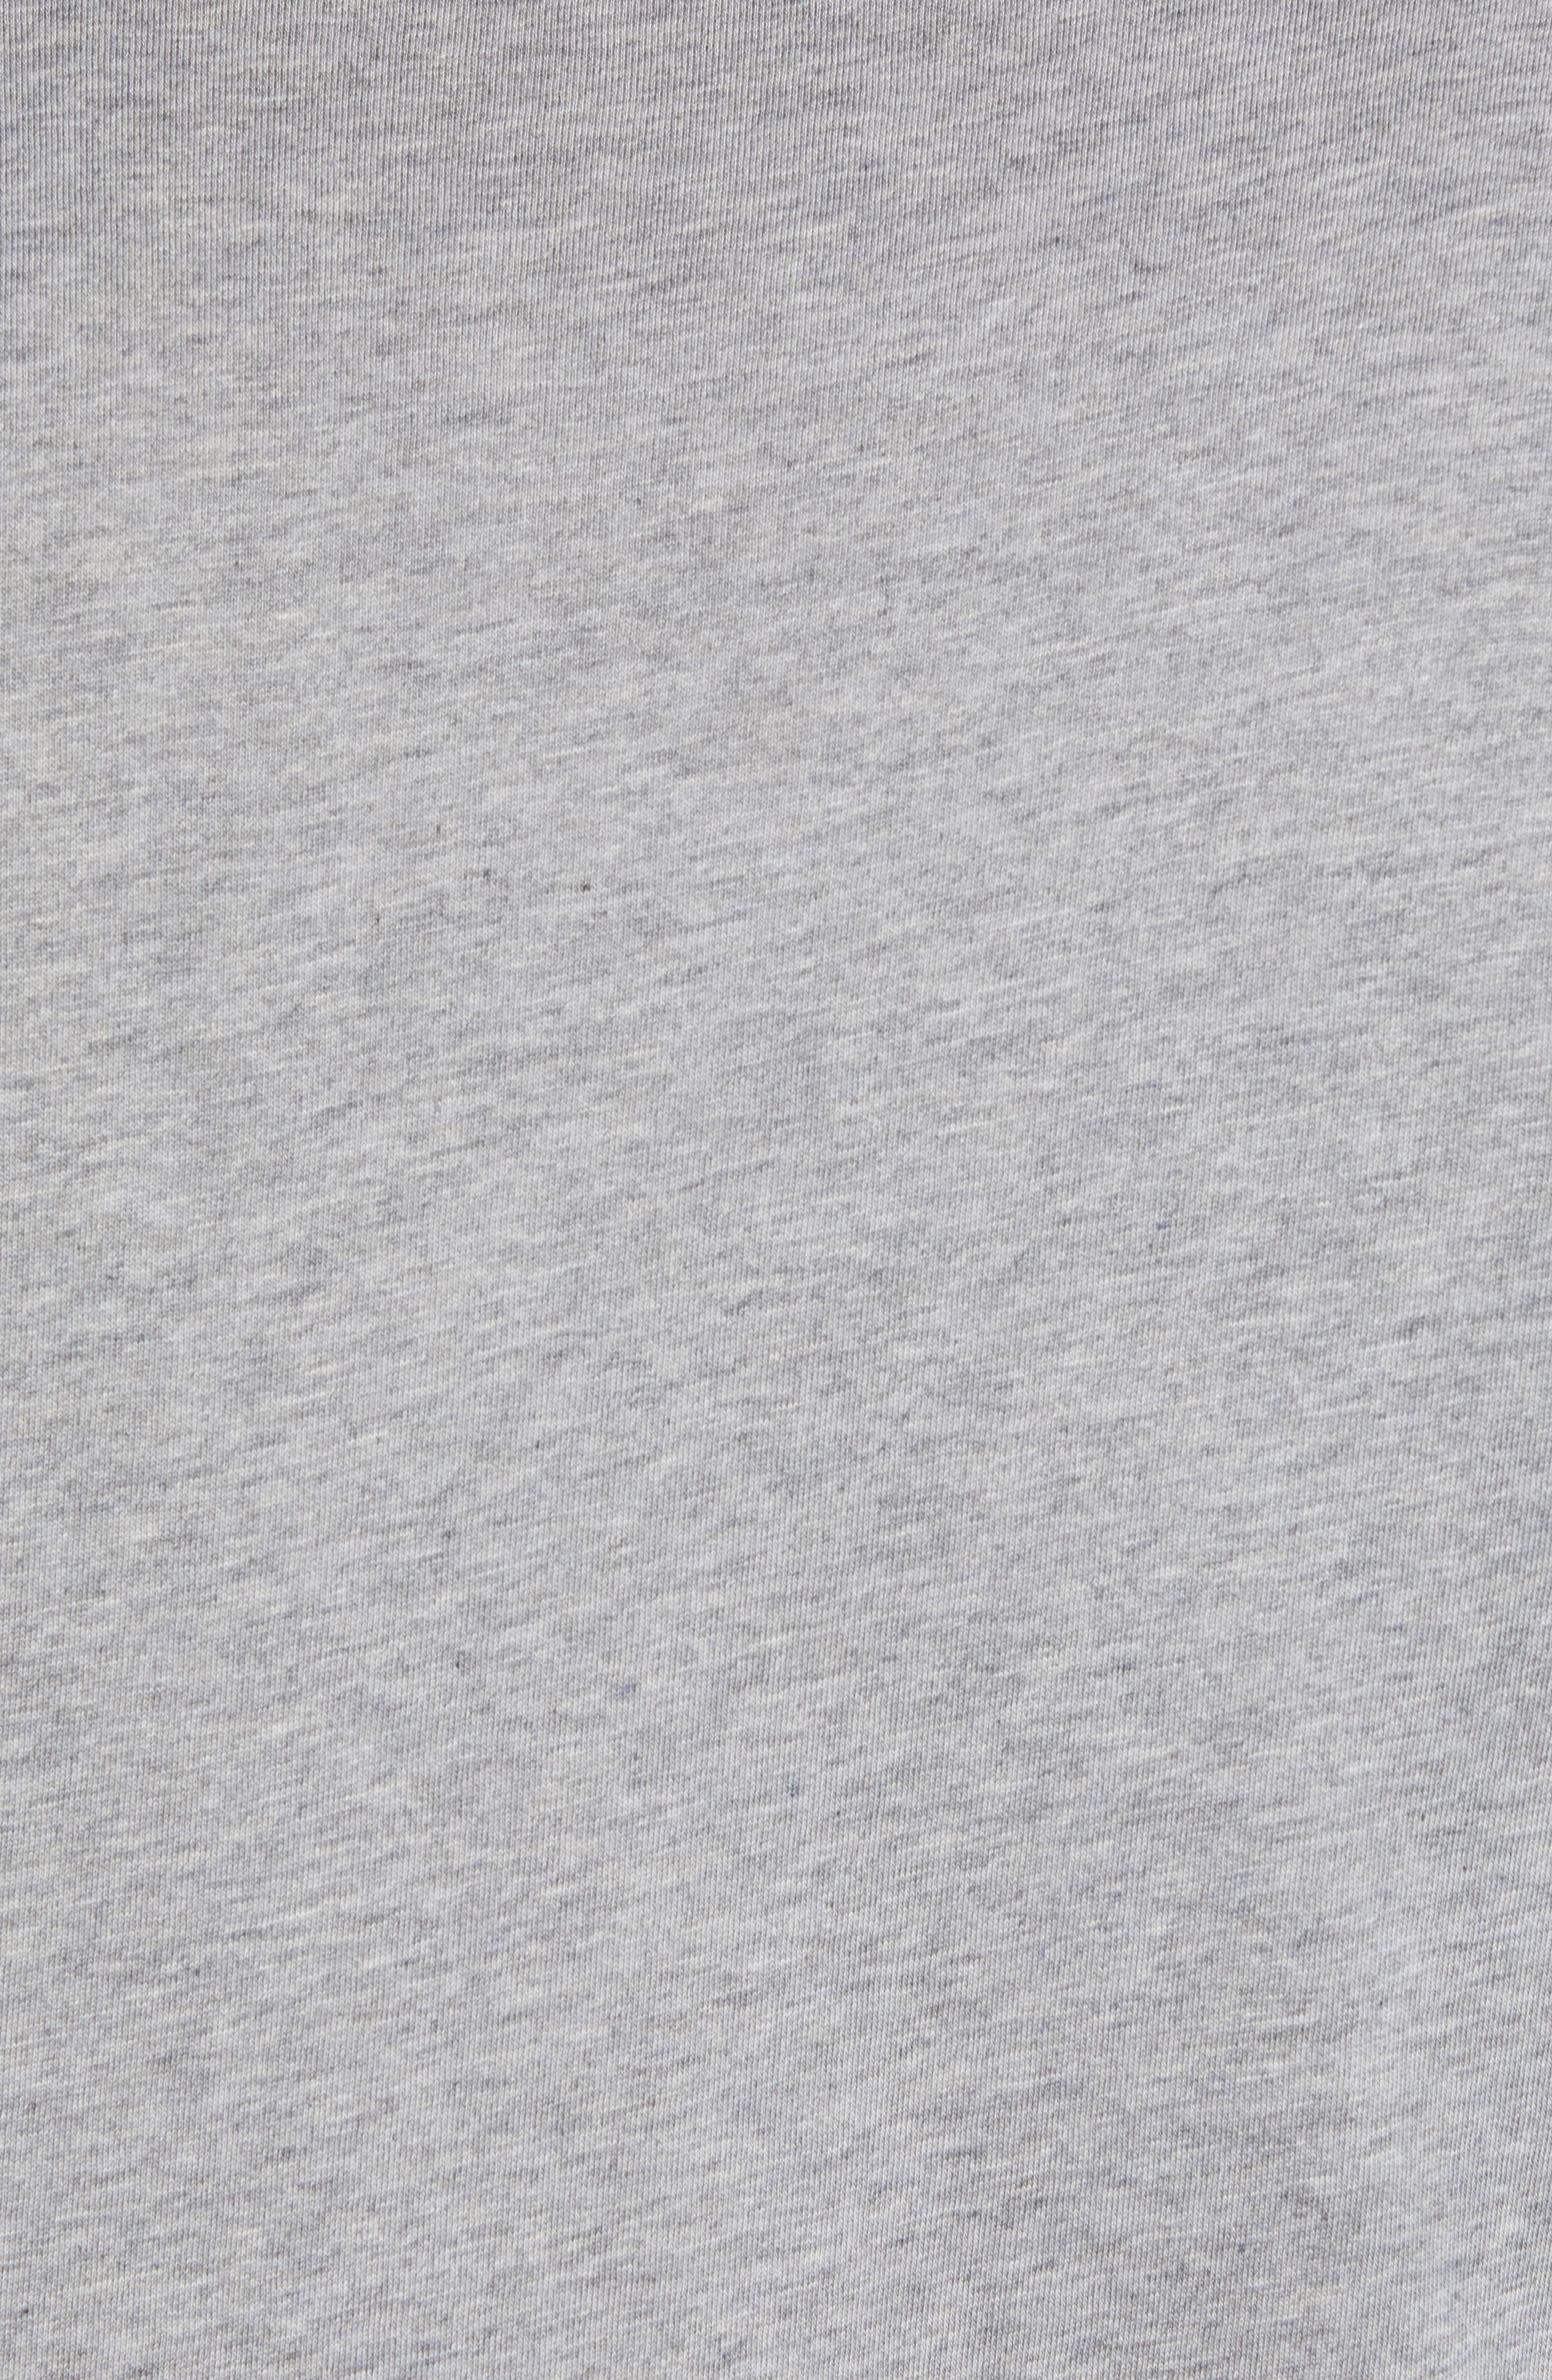 Airheads T-Shirt,                             Alternate thumbnail 5, color,                             HEATHER GREY